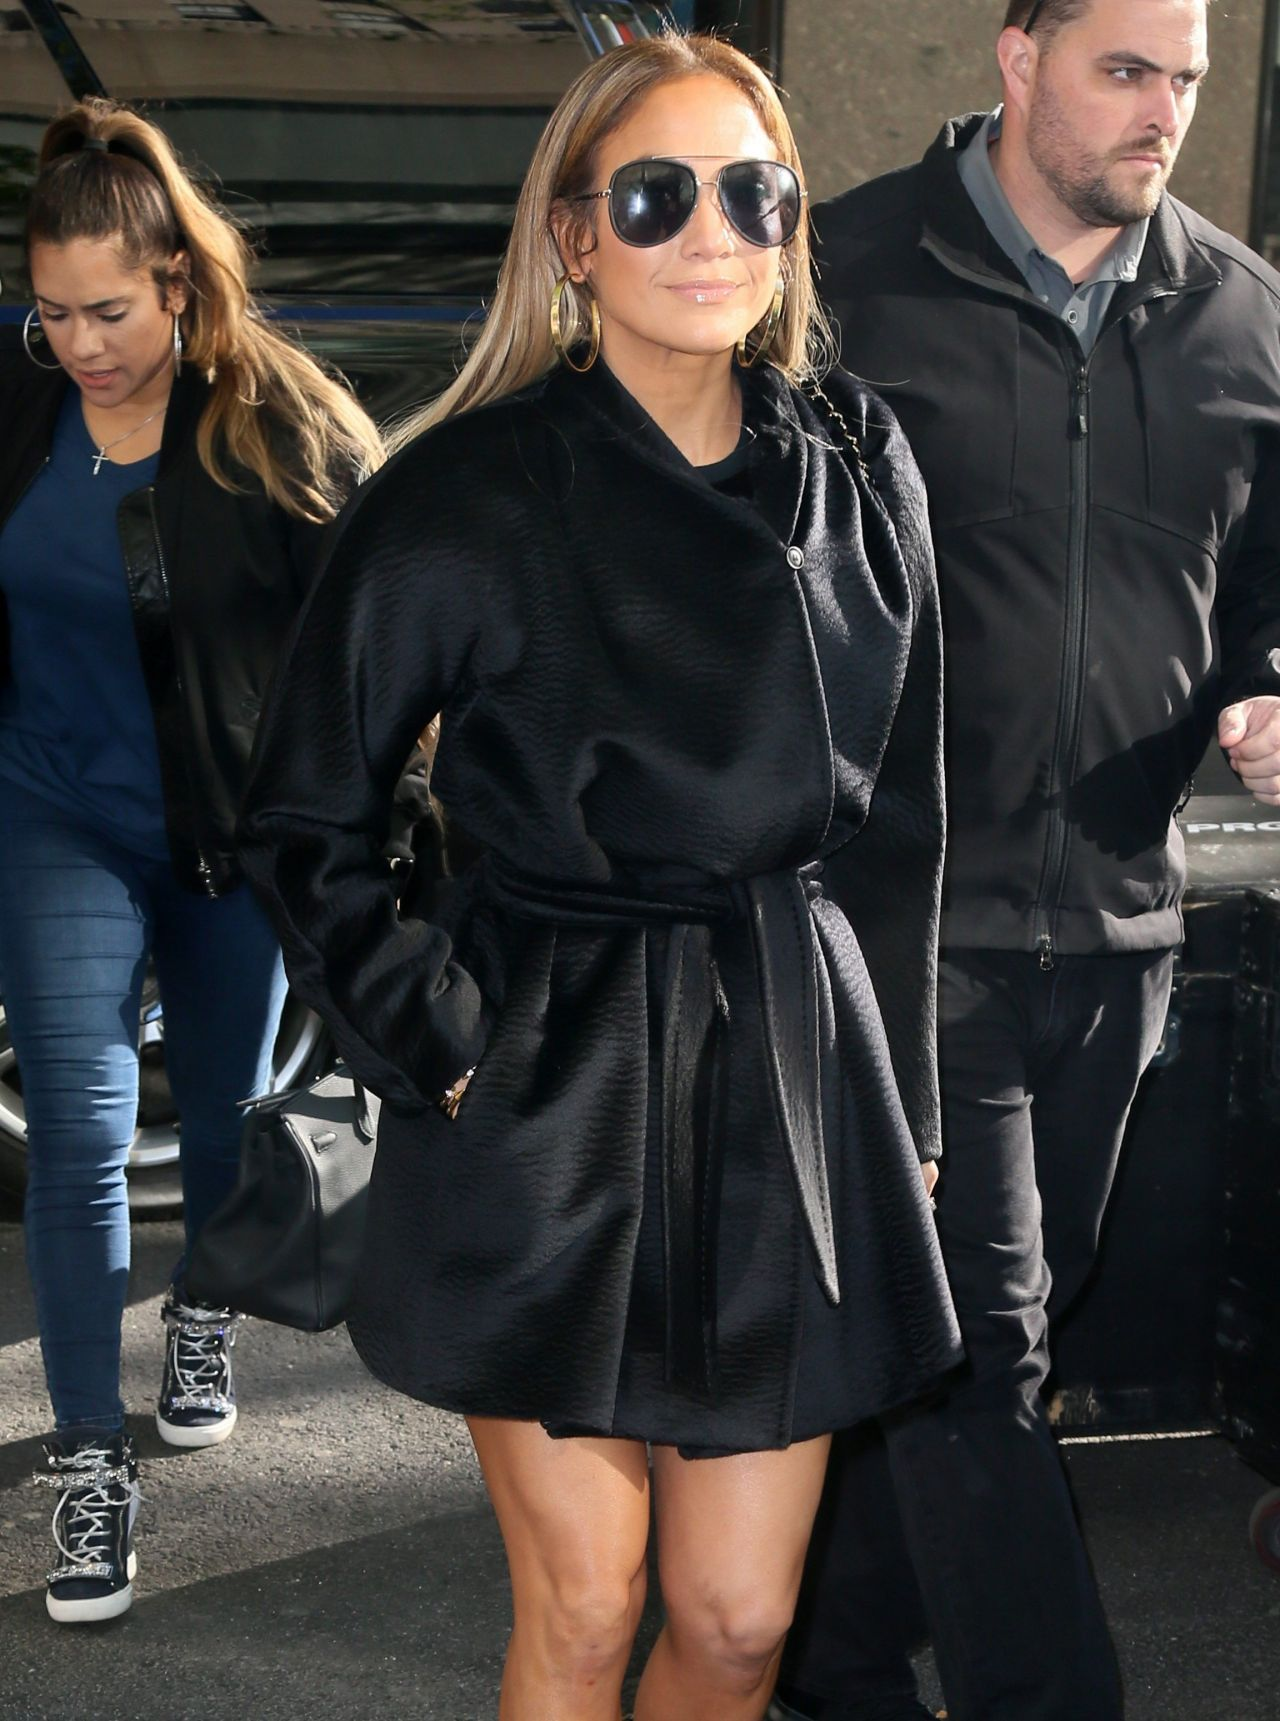 Jennifer lopez arrives to nbcs today show in new york city nudes (24 photo)